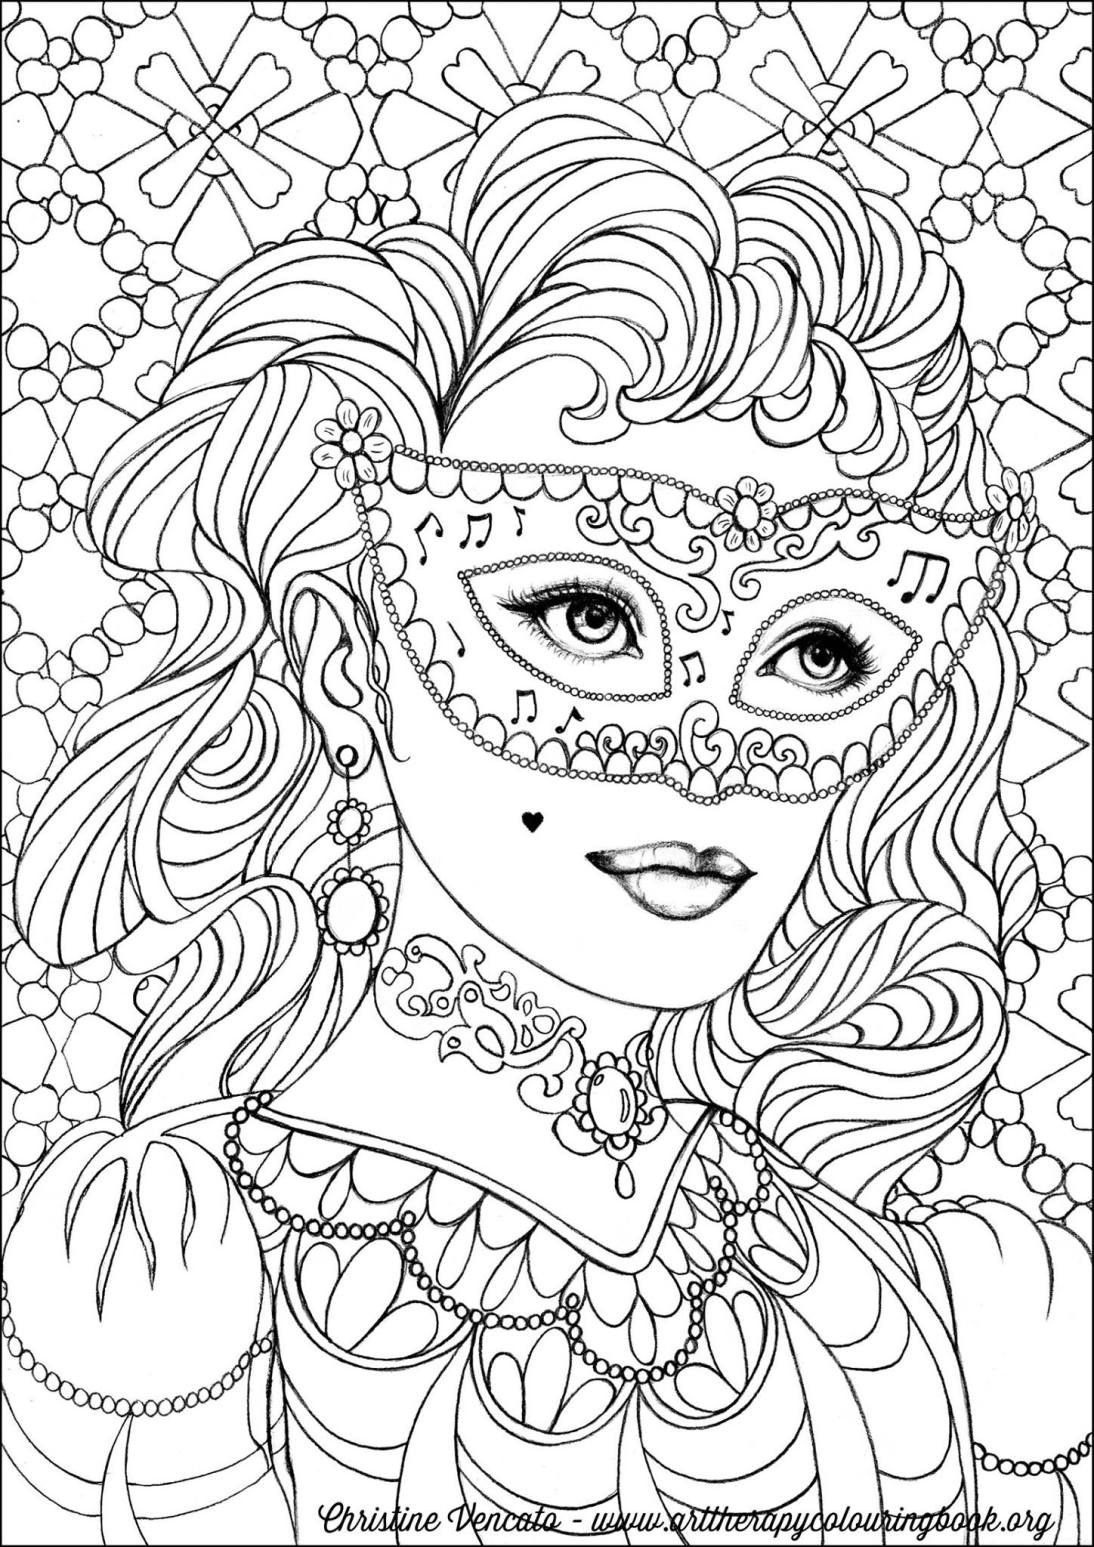 Free Coloring Page From Adult Coloring Worldwide Art By